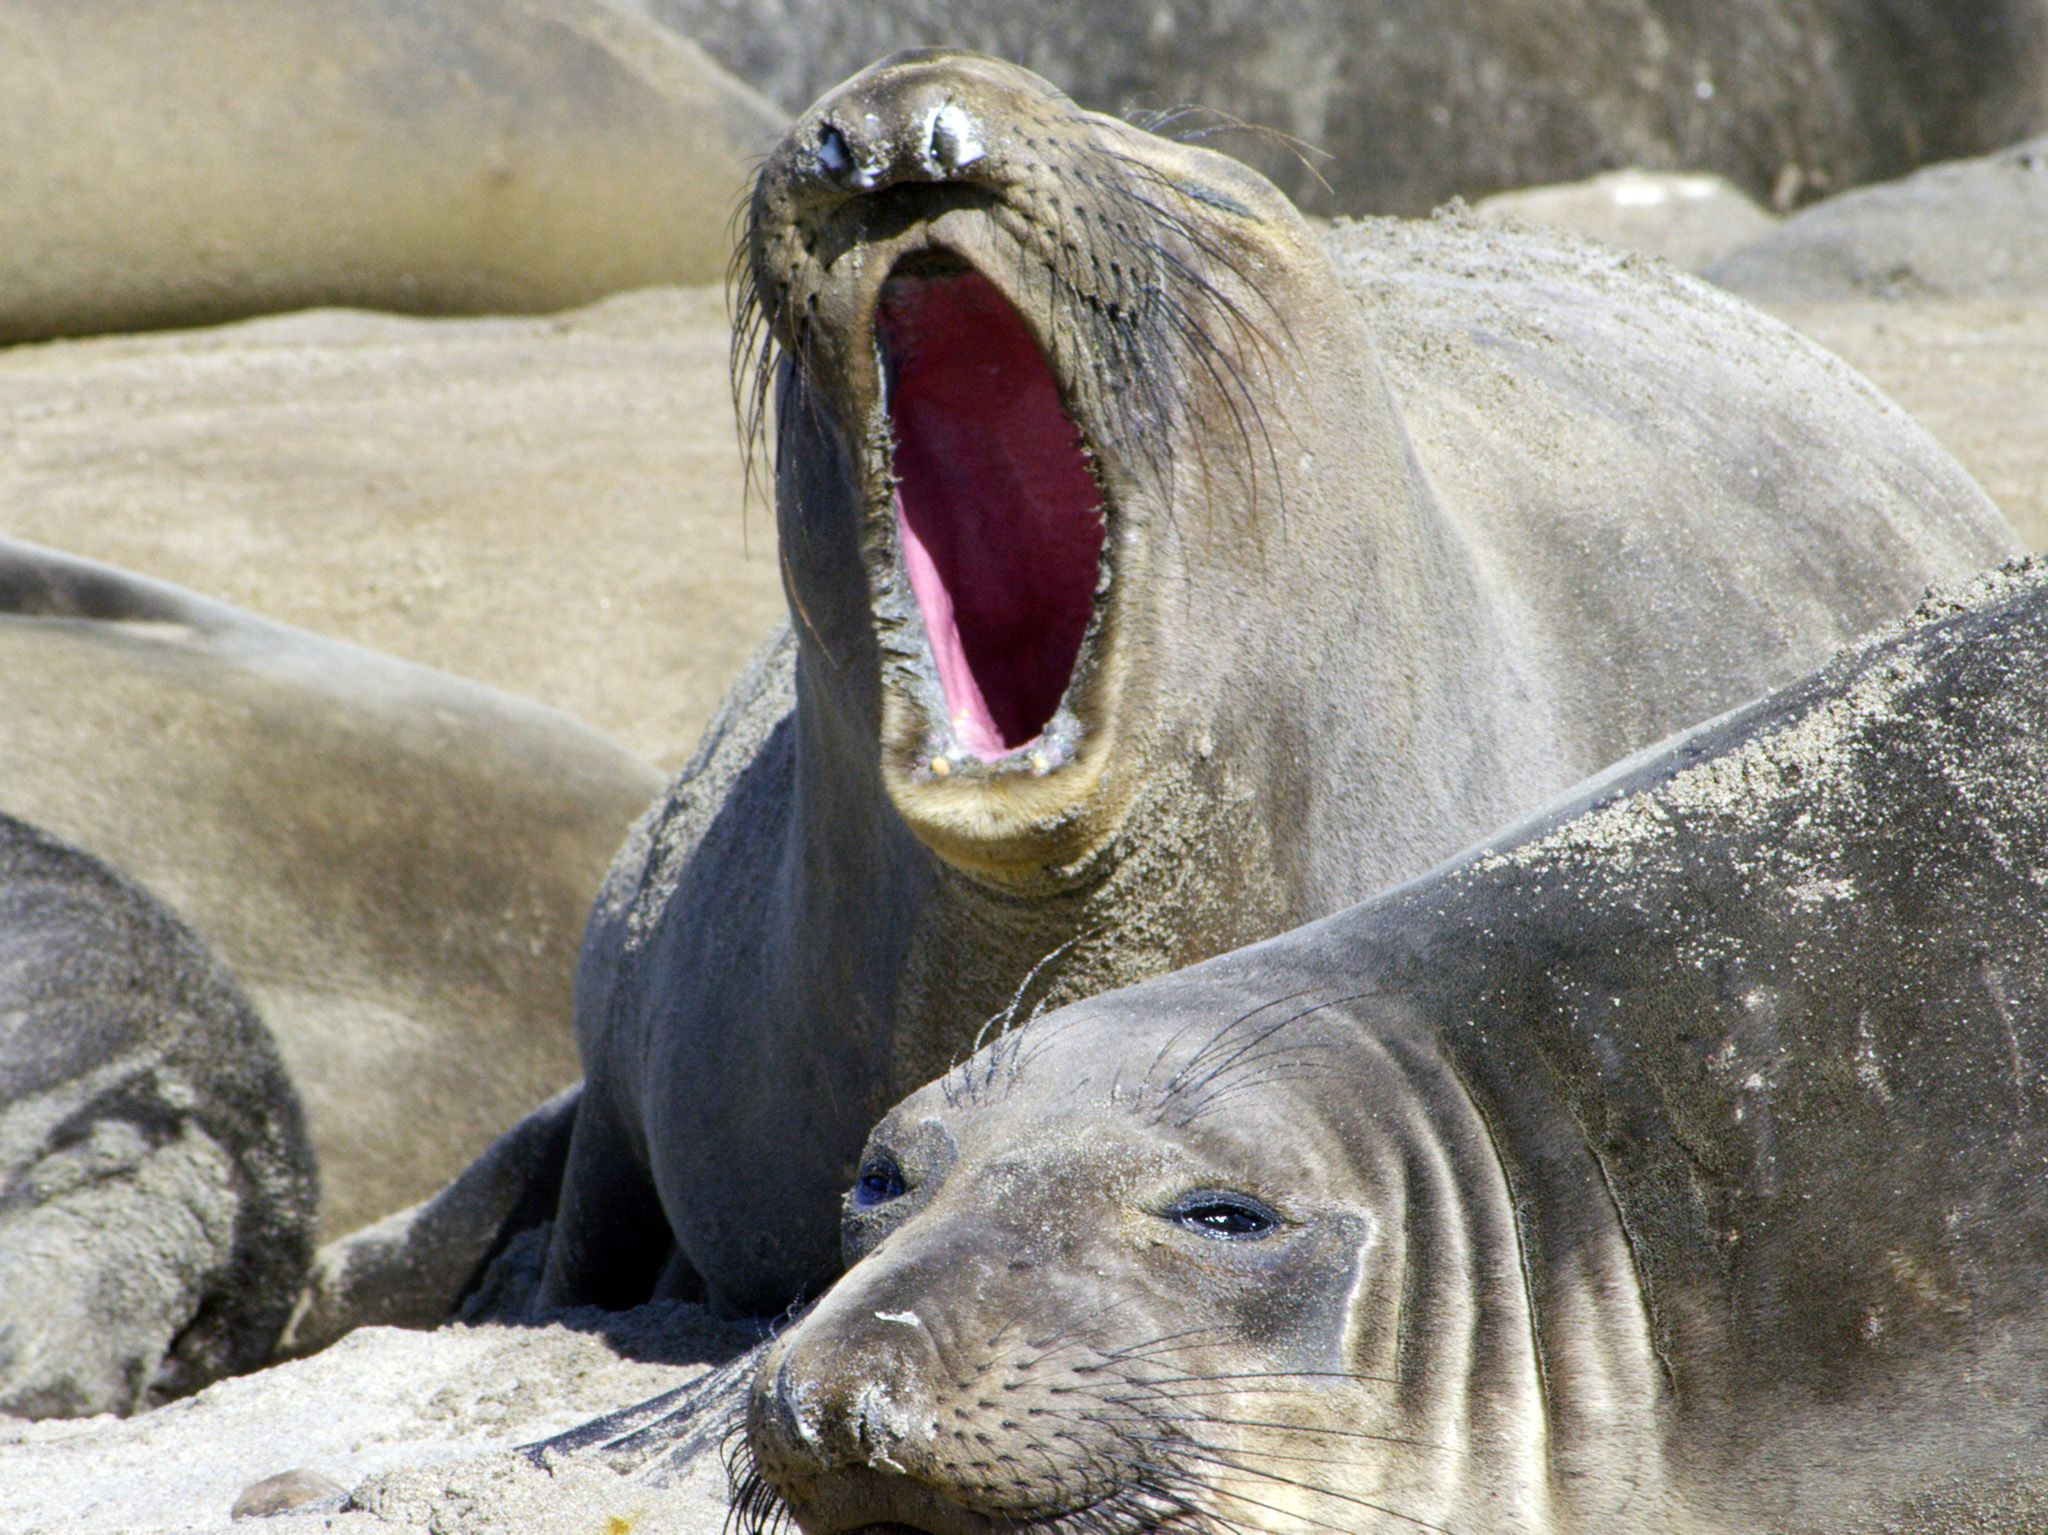 Big Sur, CA:  An Elephant Seal yawning while on the beach. This image is from America the... [Foto del giorno - luglio 2018]